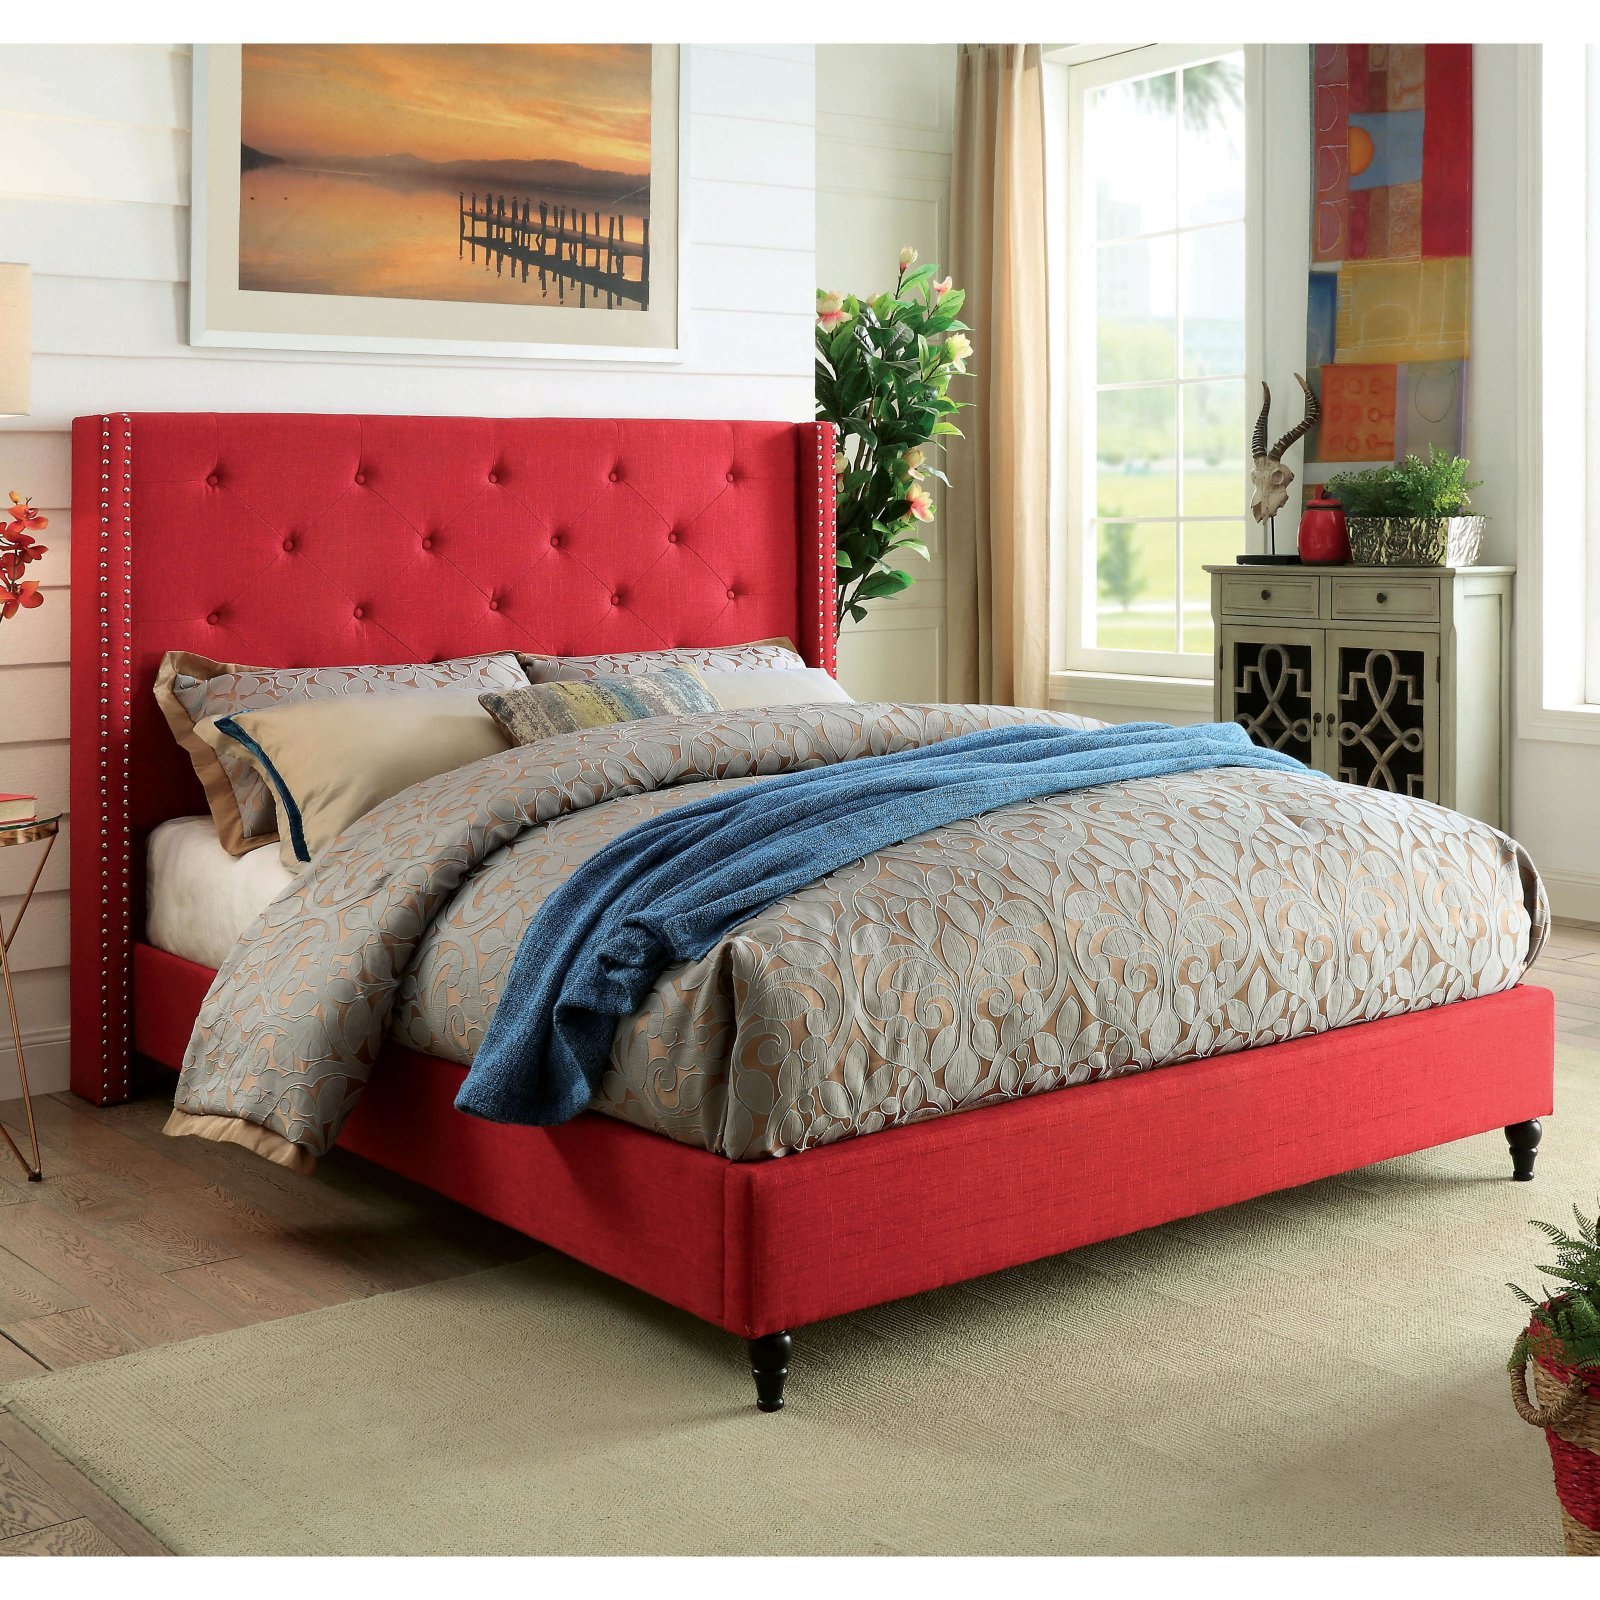 Furniture Of America Selina Contemporary Tufted Linen Like Fabric Wingback  Platform Bed   Walmart.com